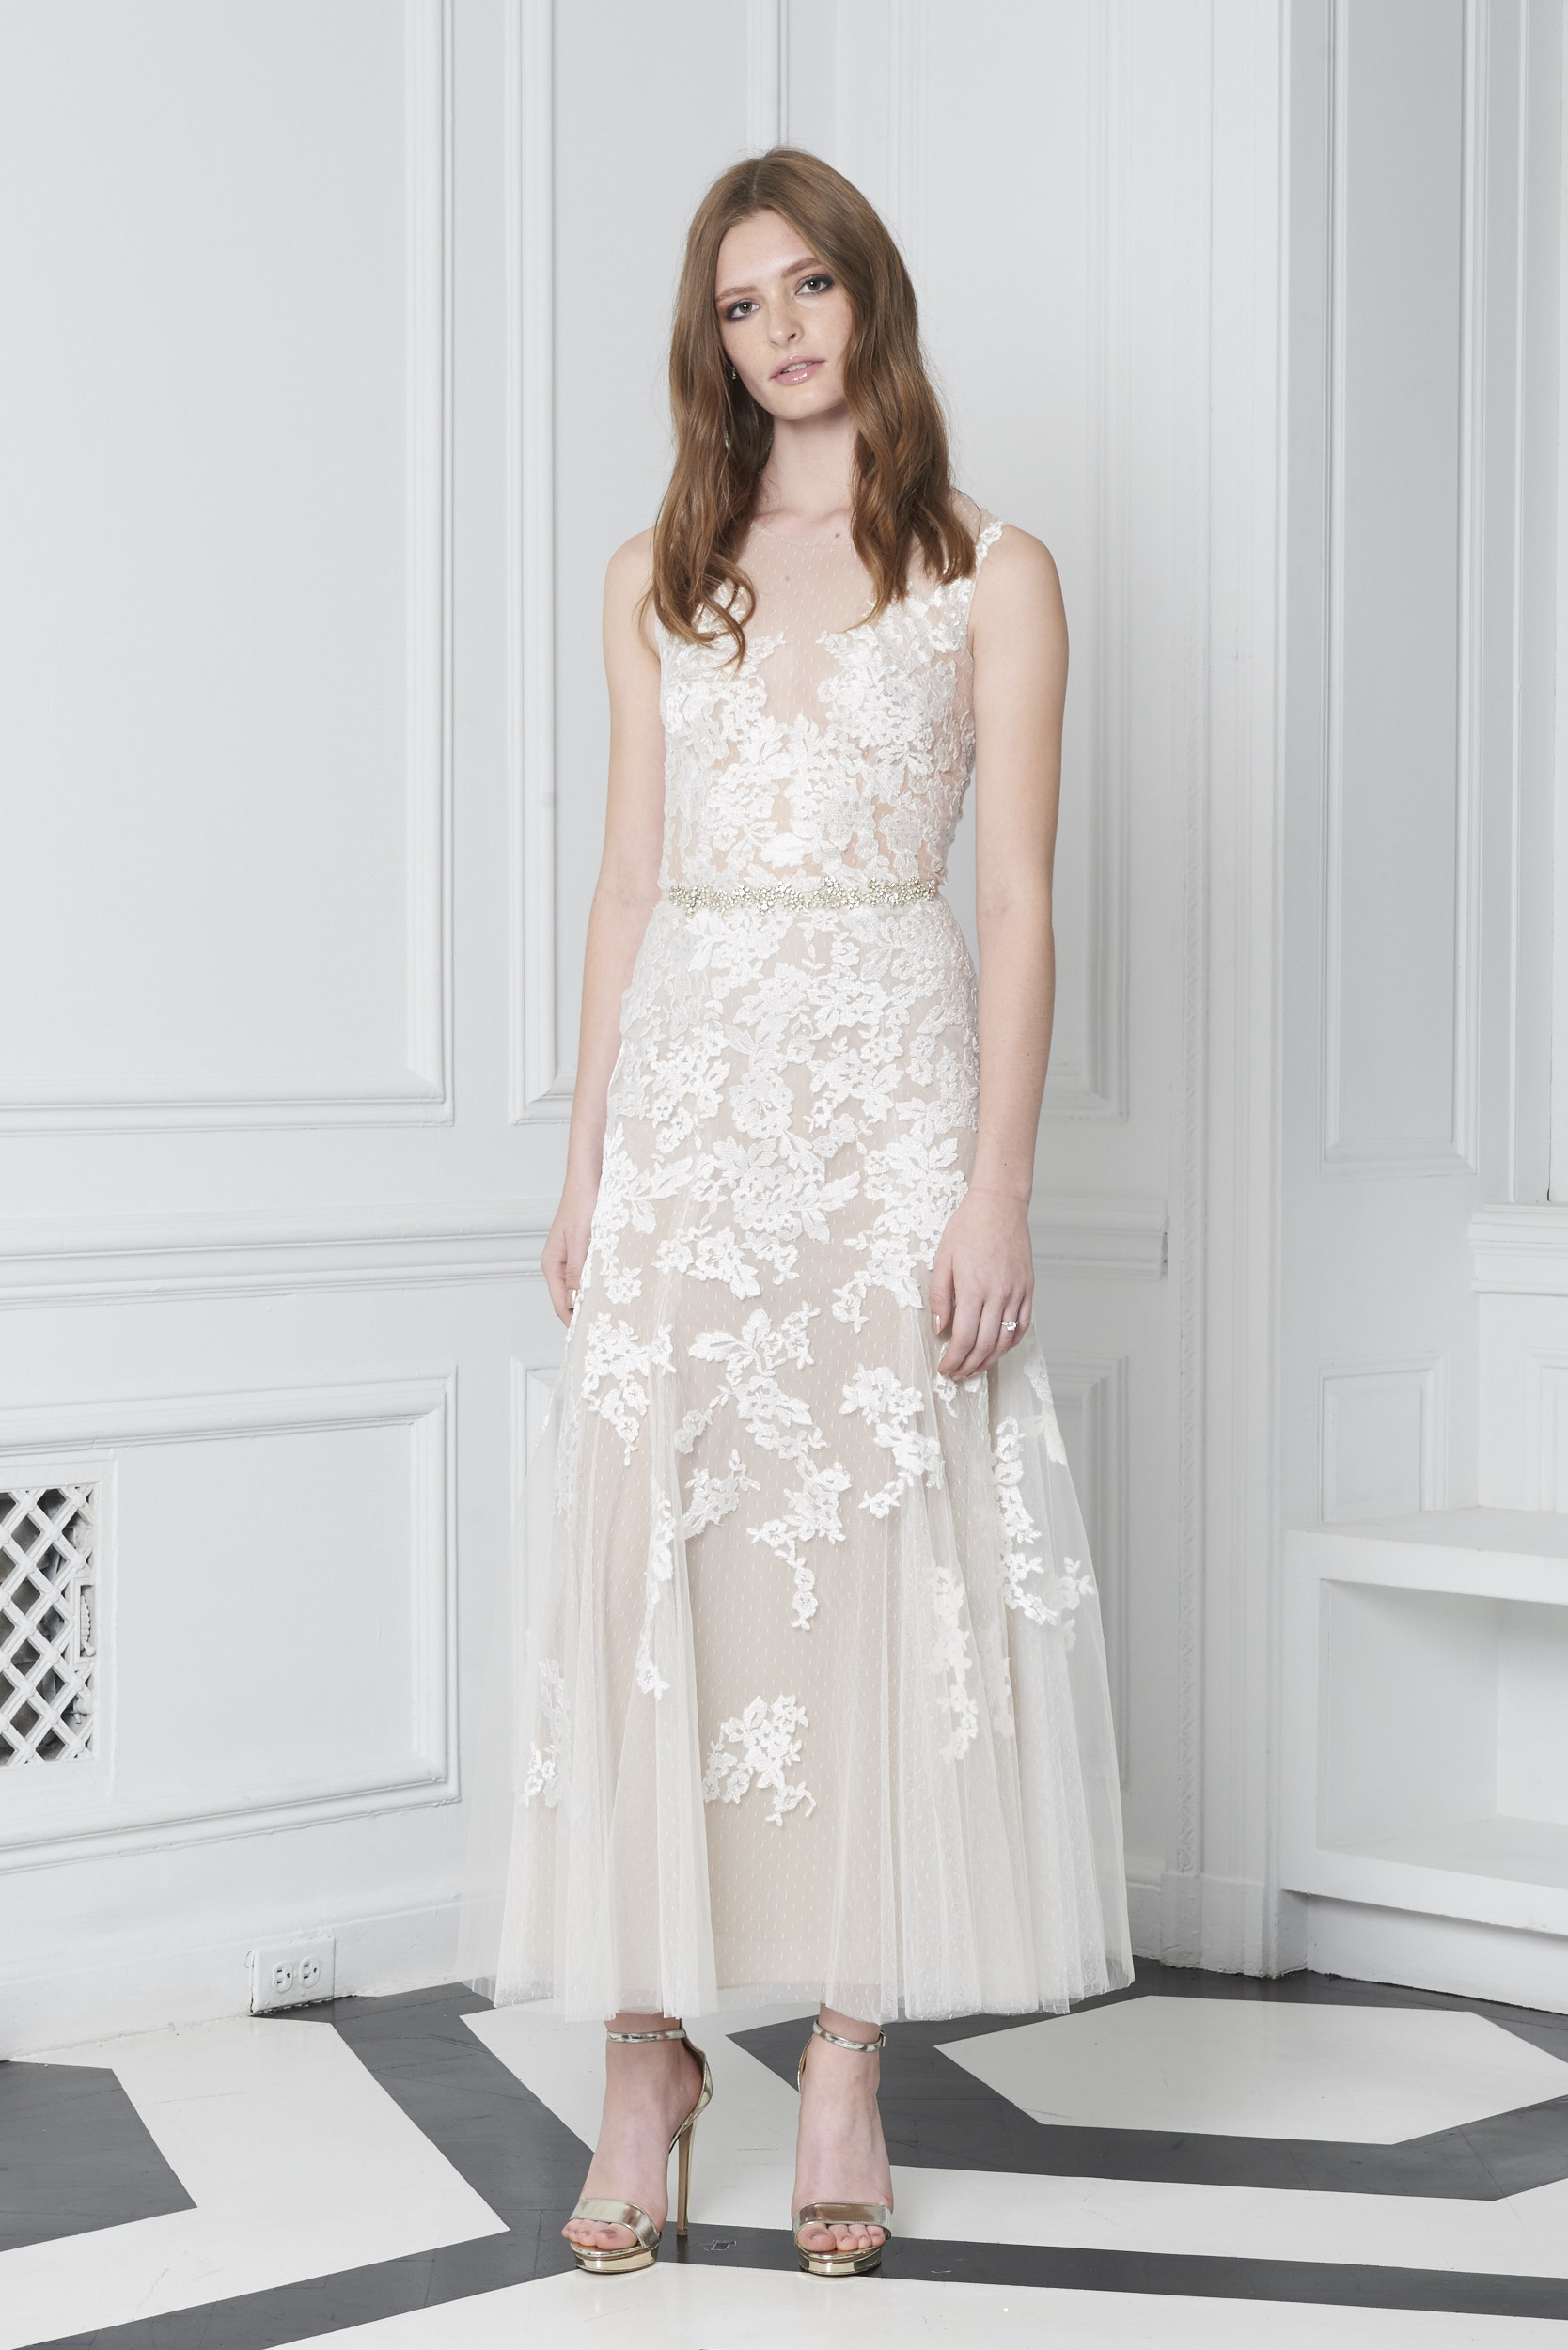 Monique Lhuillier Bliss Fall 2018 Tea-Length Embroidered A-Line Wedding Dress